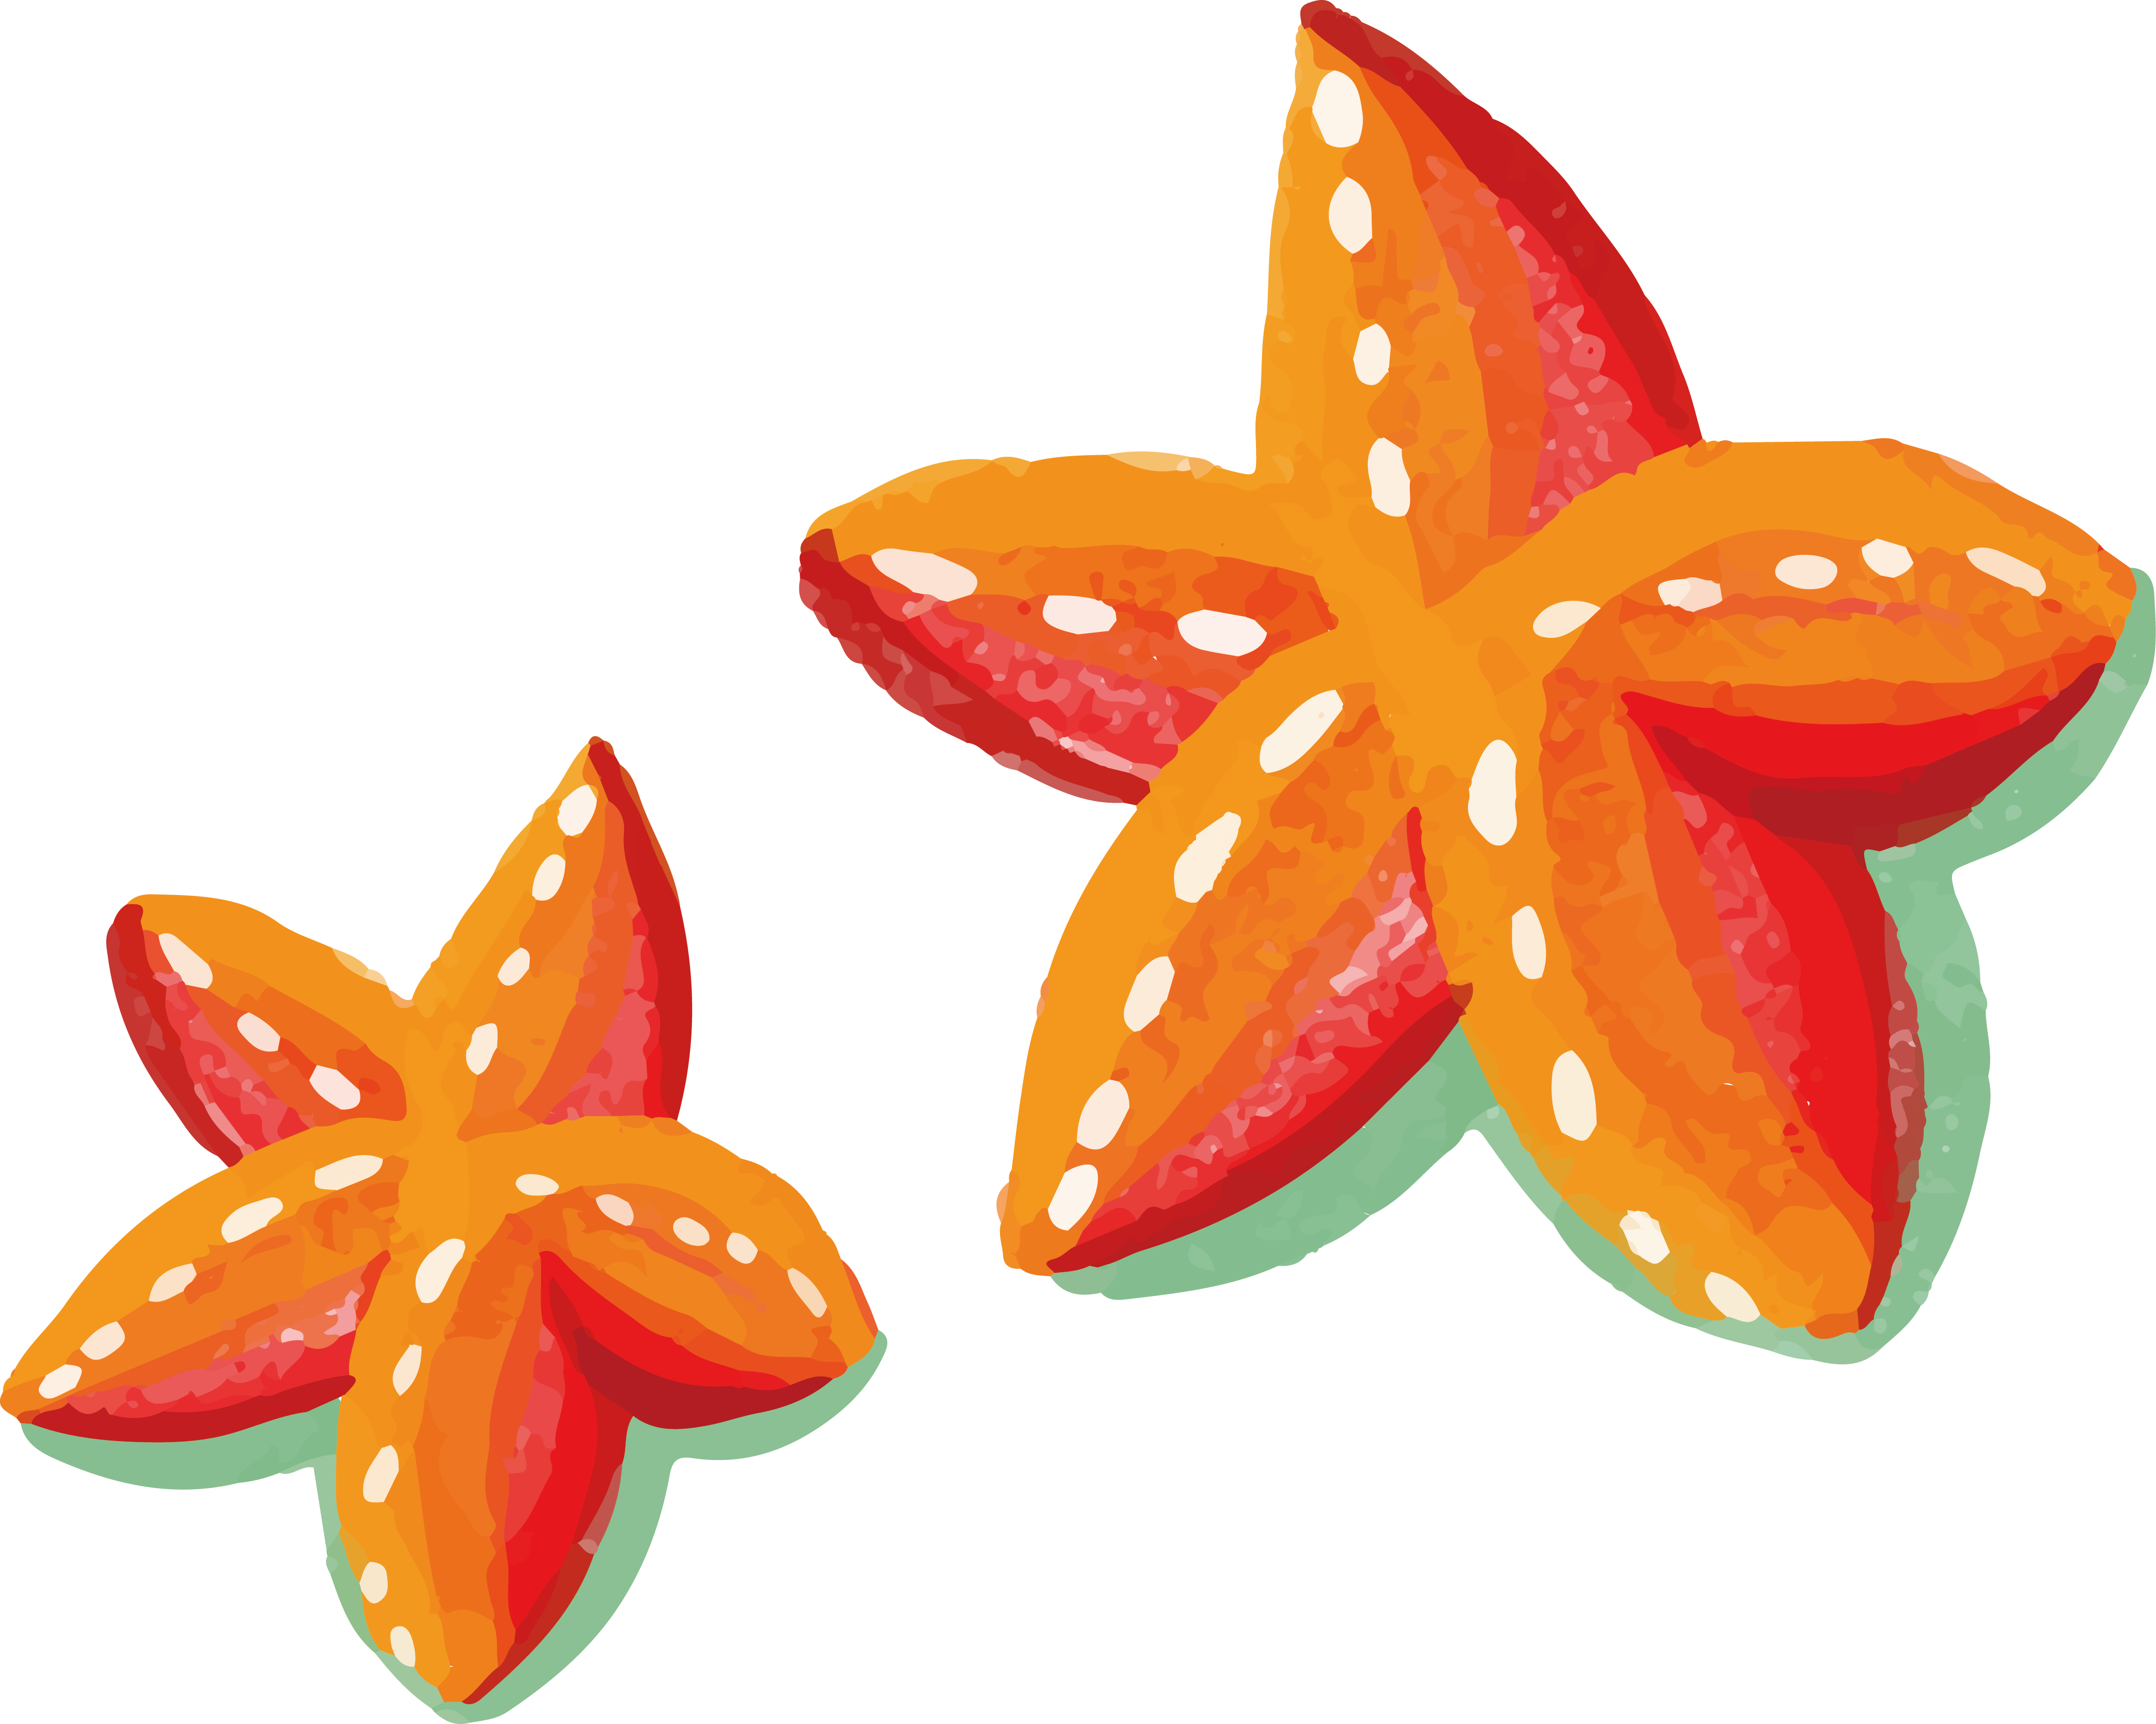 Starfish clipart watercolor. Painting orange painted transprent